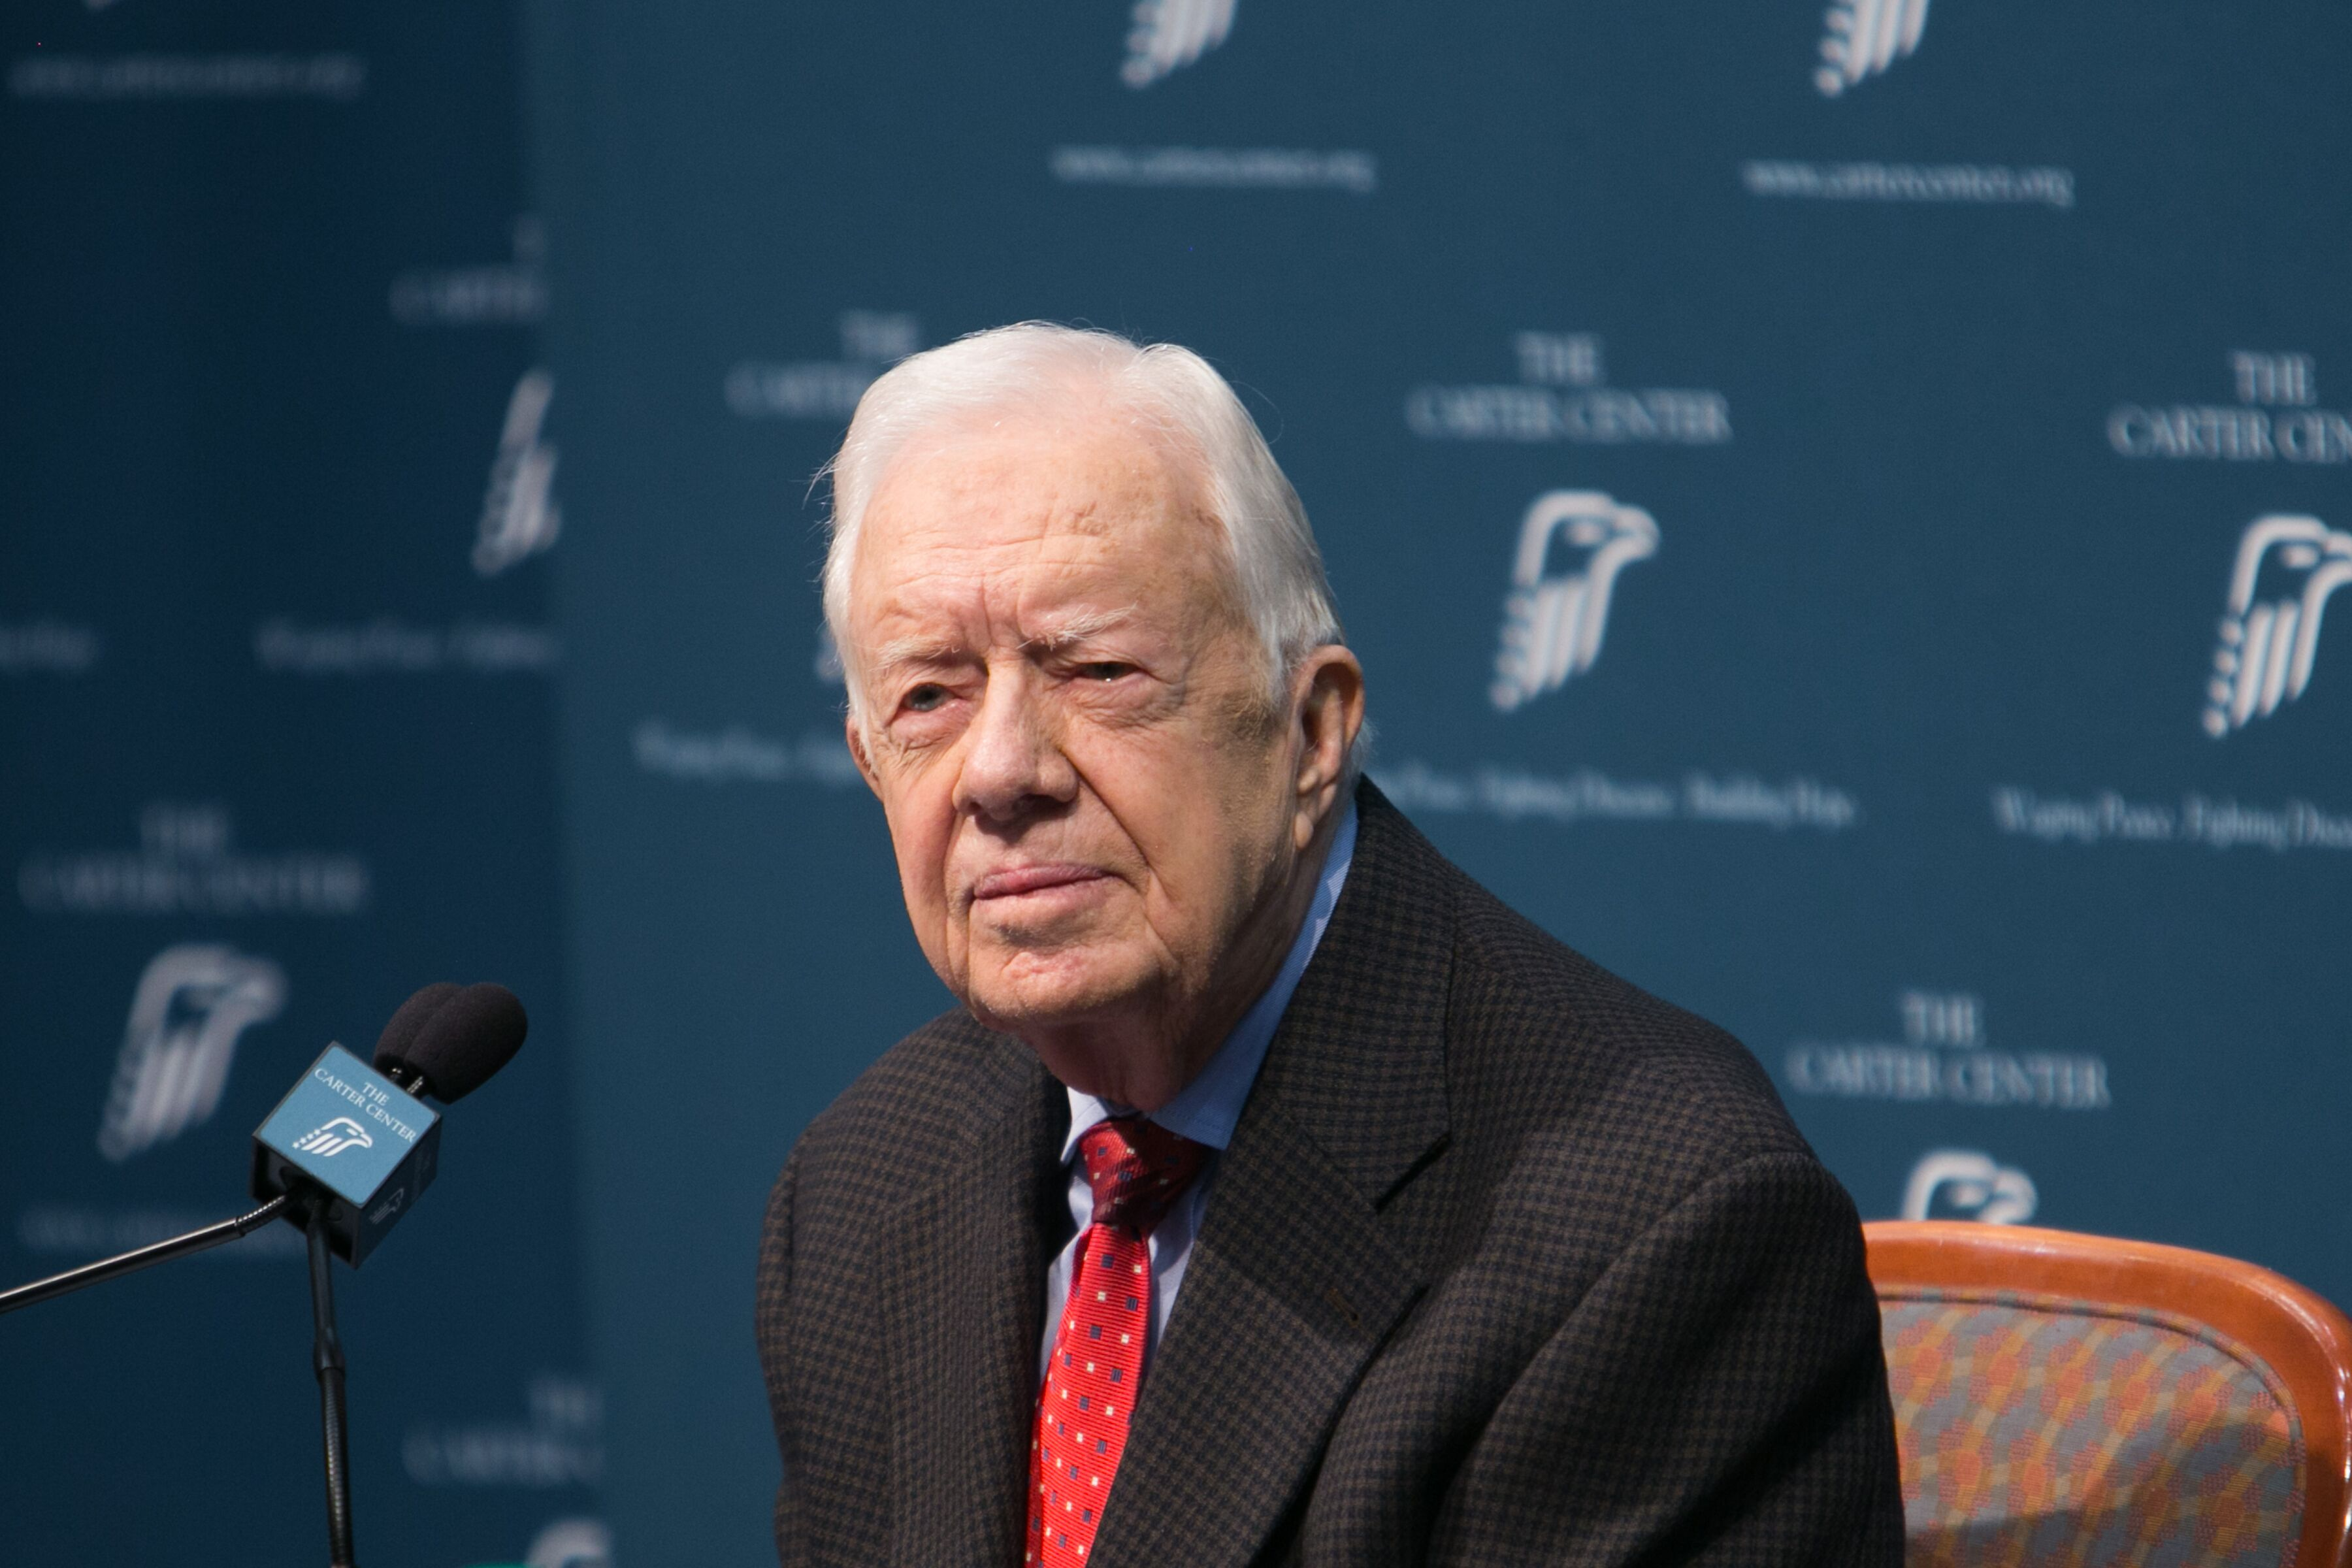 Jimmy Carter at a press conference at the Carter Center on August 20, 2015, in Atlanta, Georgia | Photo: Getty Images